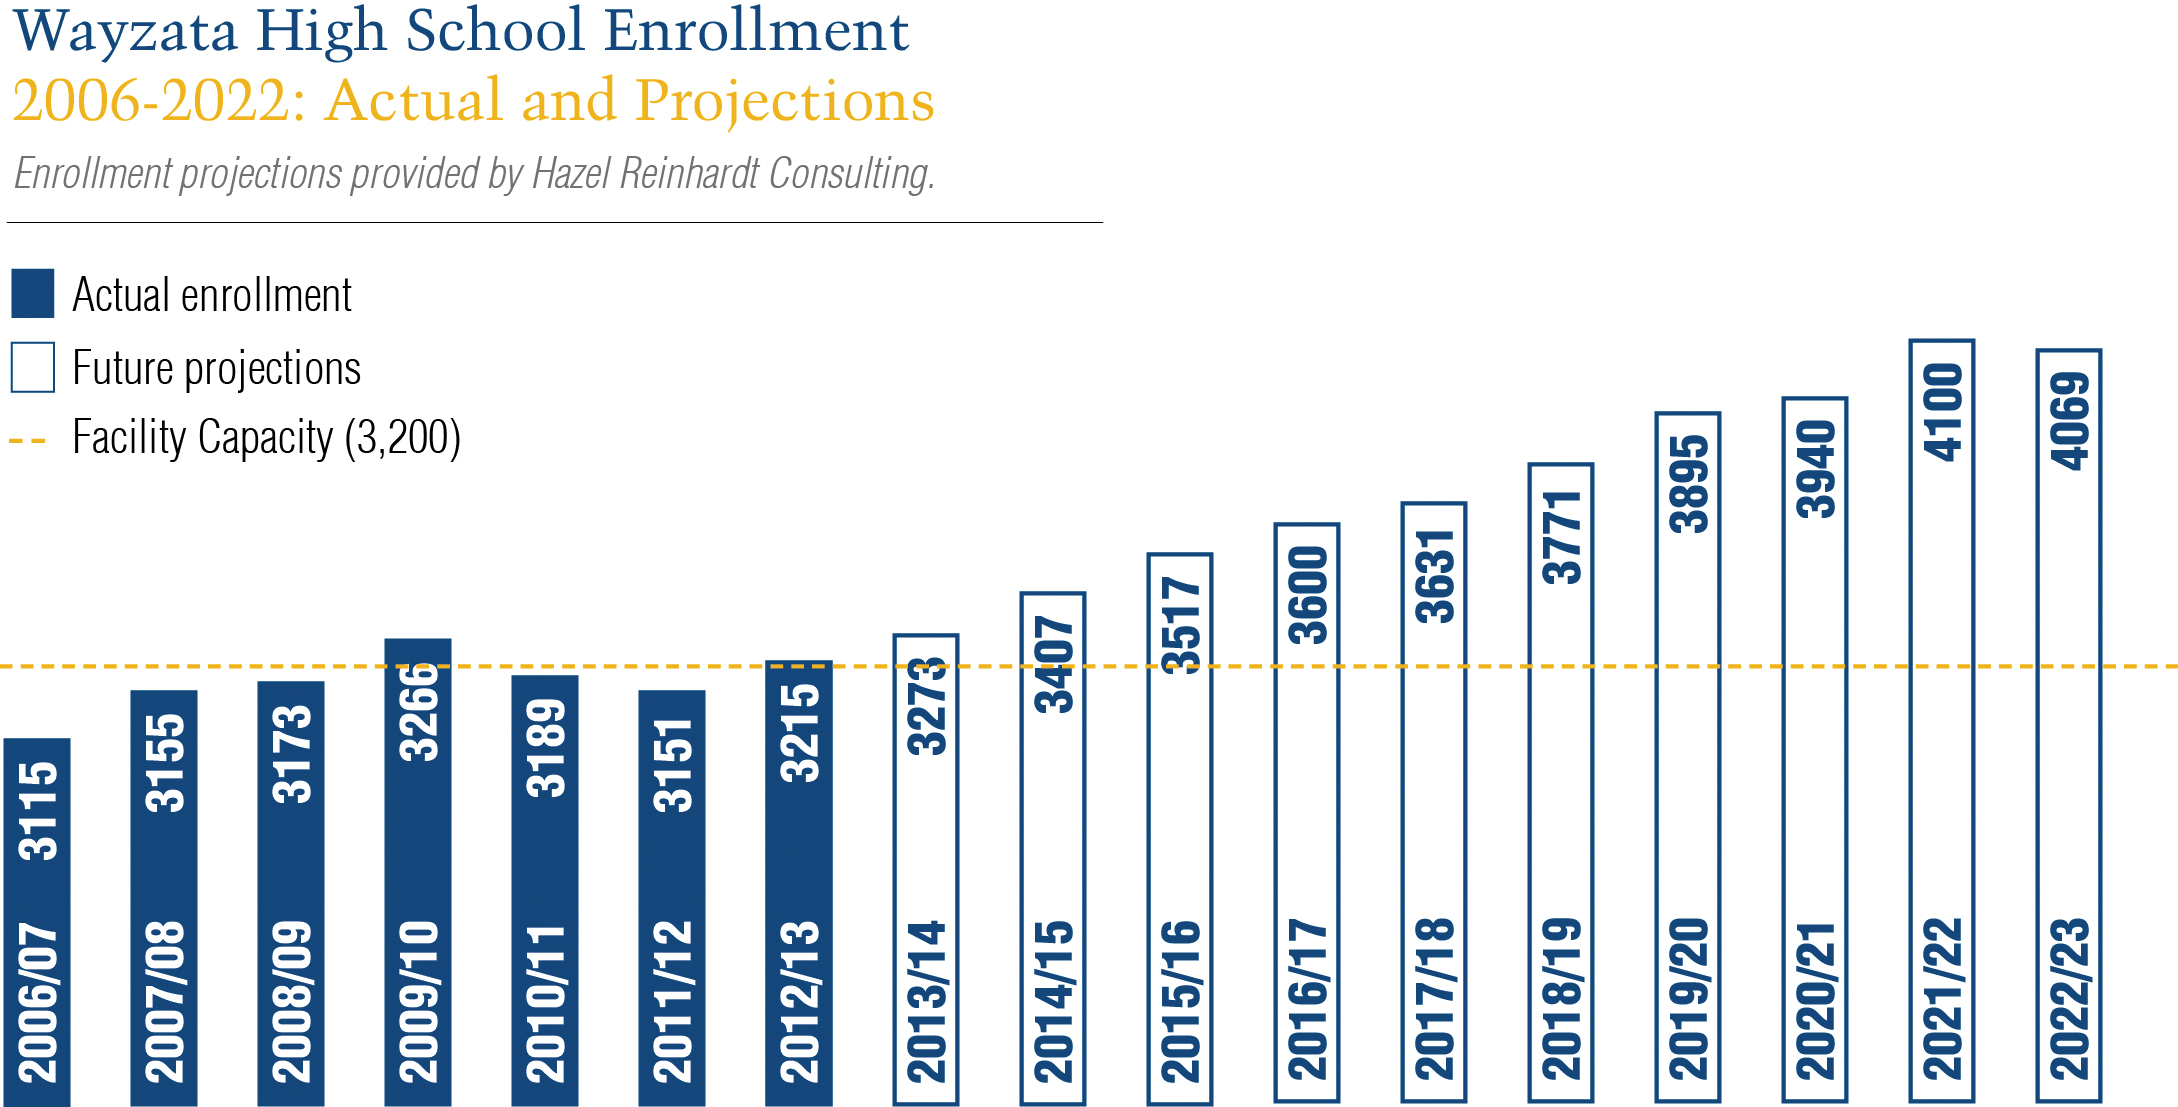 Wayzata High School Enrollment Projections